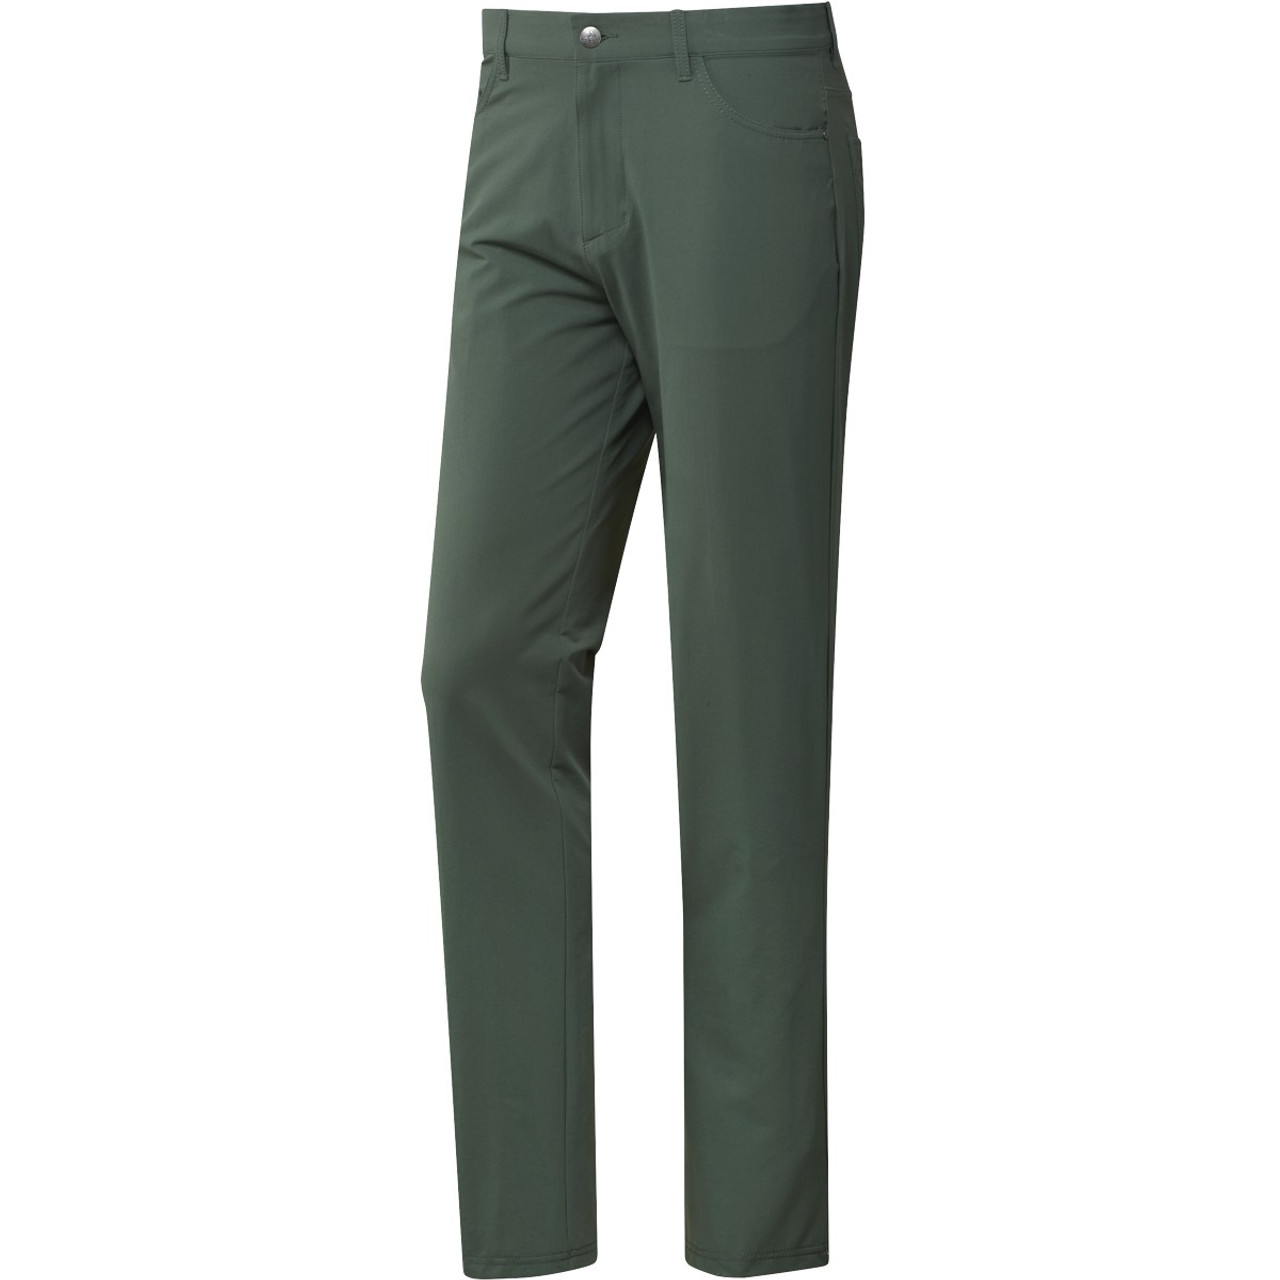 Adidas GO-TO Five Pocket Pants- Green Oxide